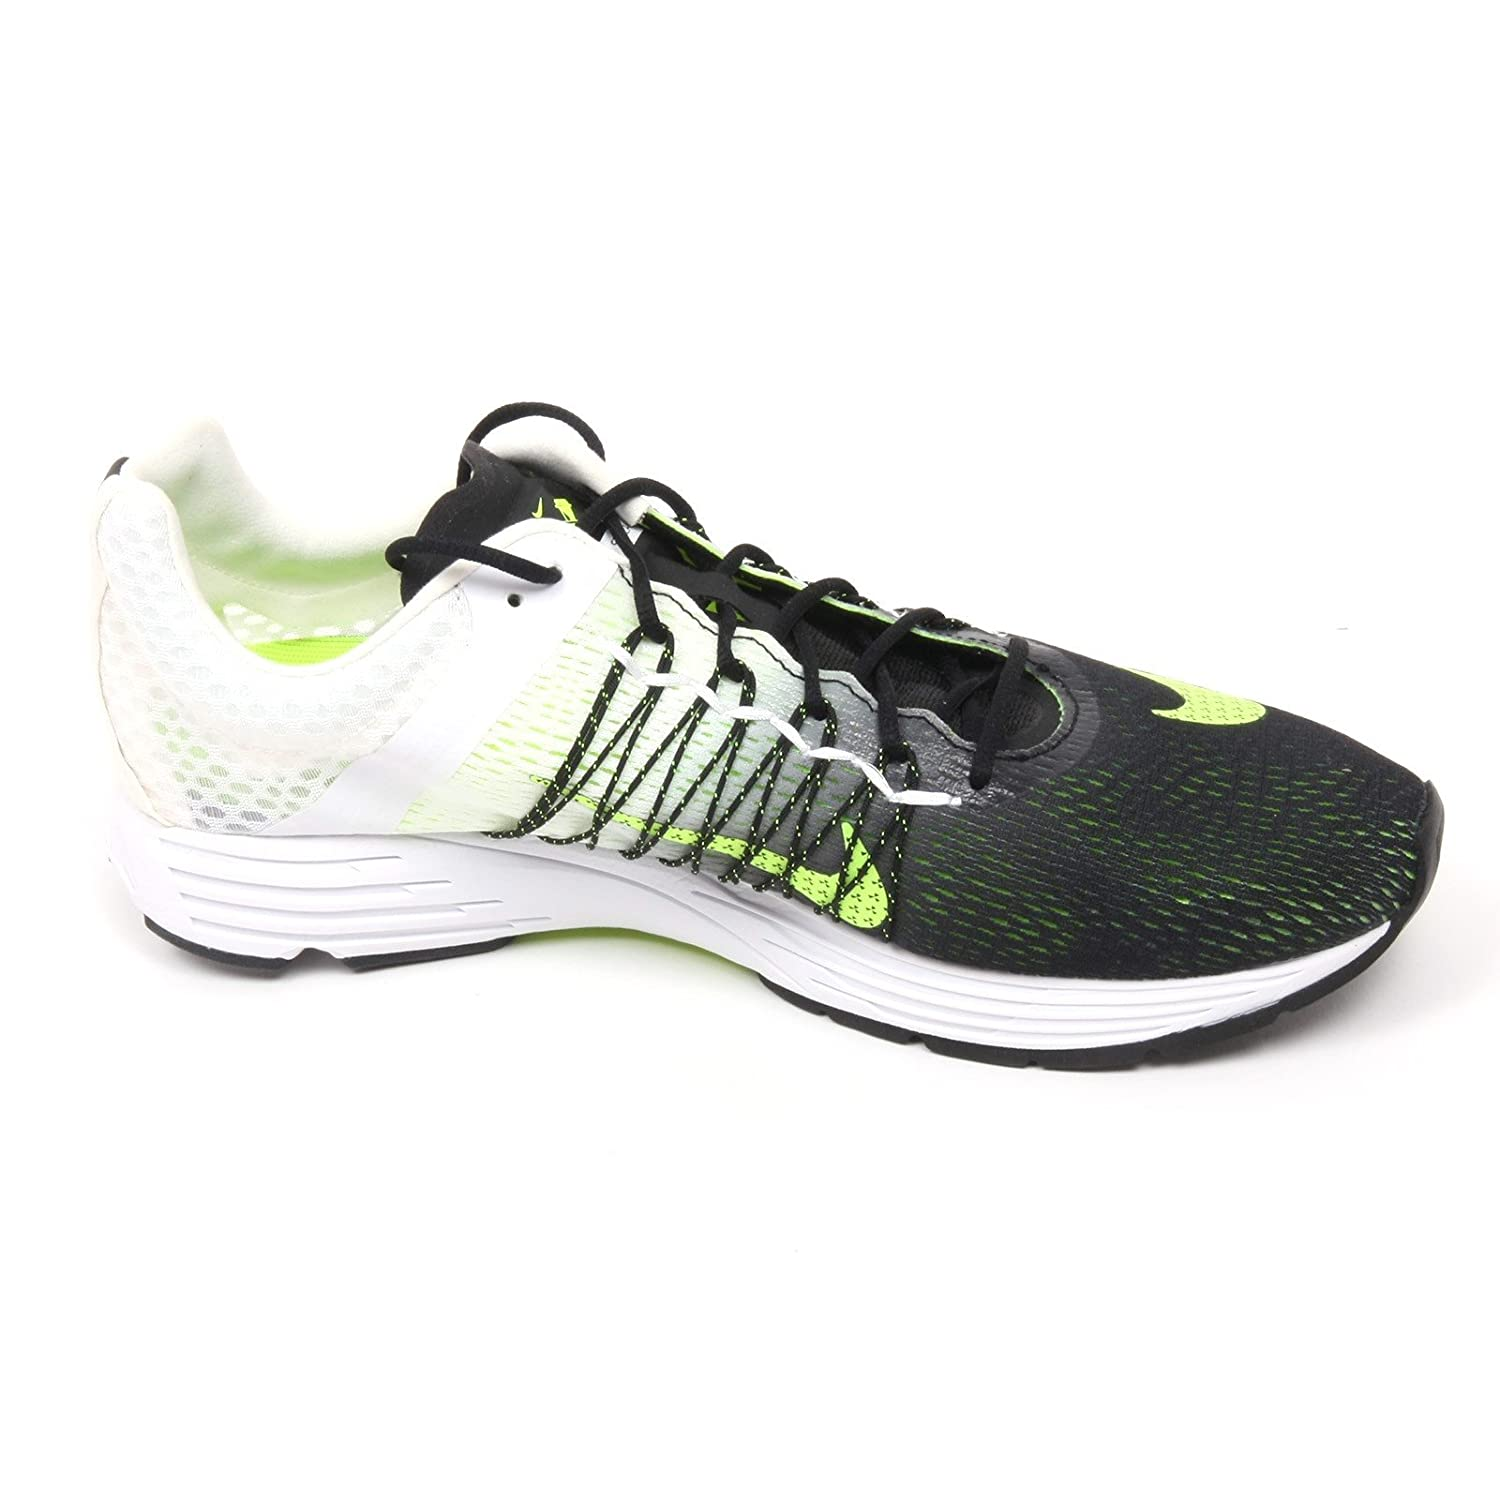 e734a50d1b849 Nike Unisex Adults  Air Zoom Streak 5 Cp Running Shoes White  Amazon.co.uk   Shoes   Bags